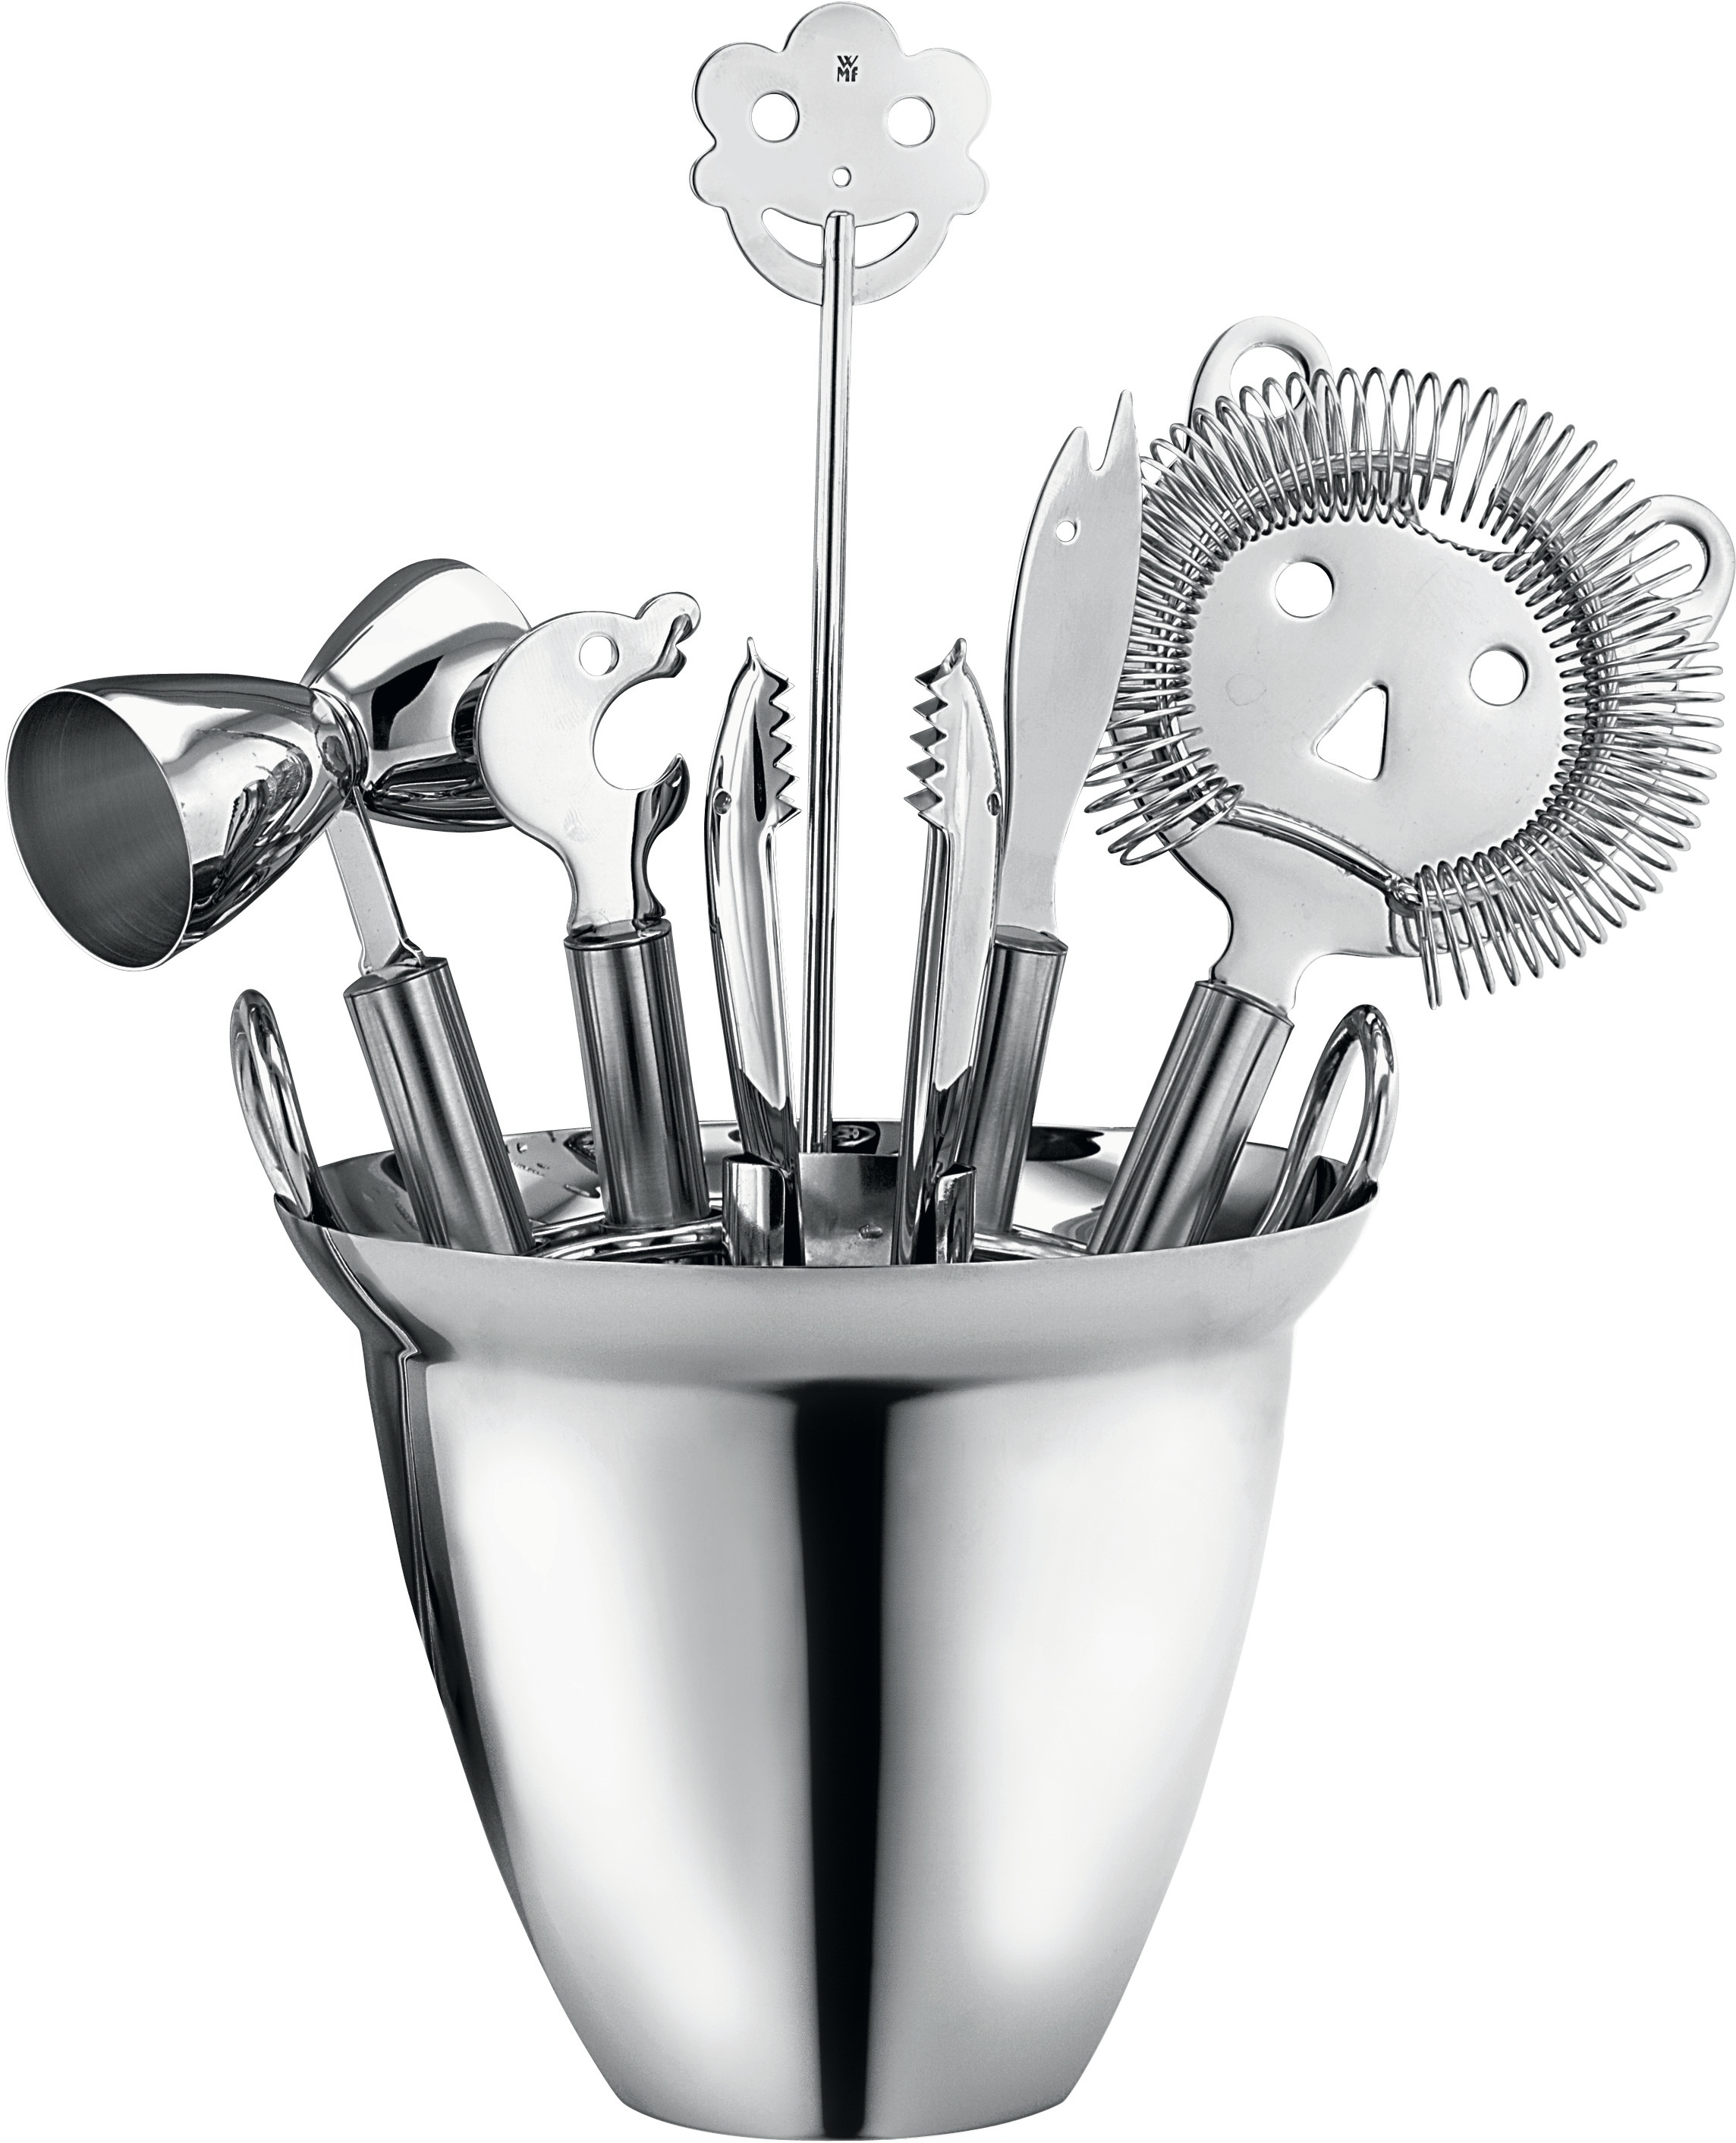 WMF Profi Plus Stainless Steel 7 Piece Bar Set